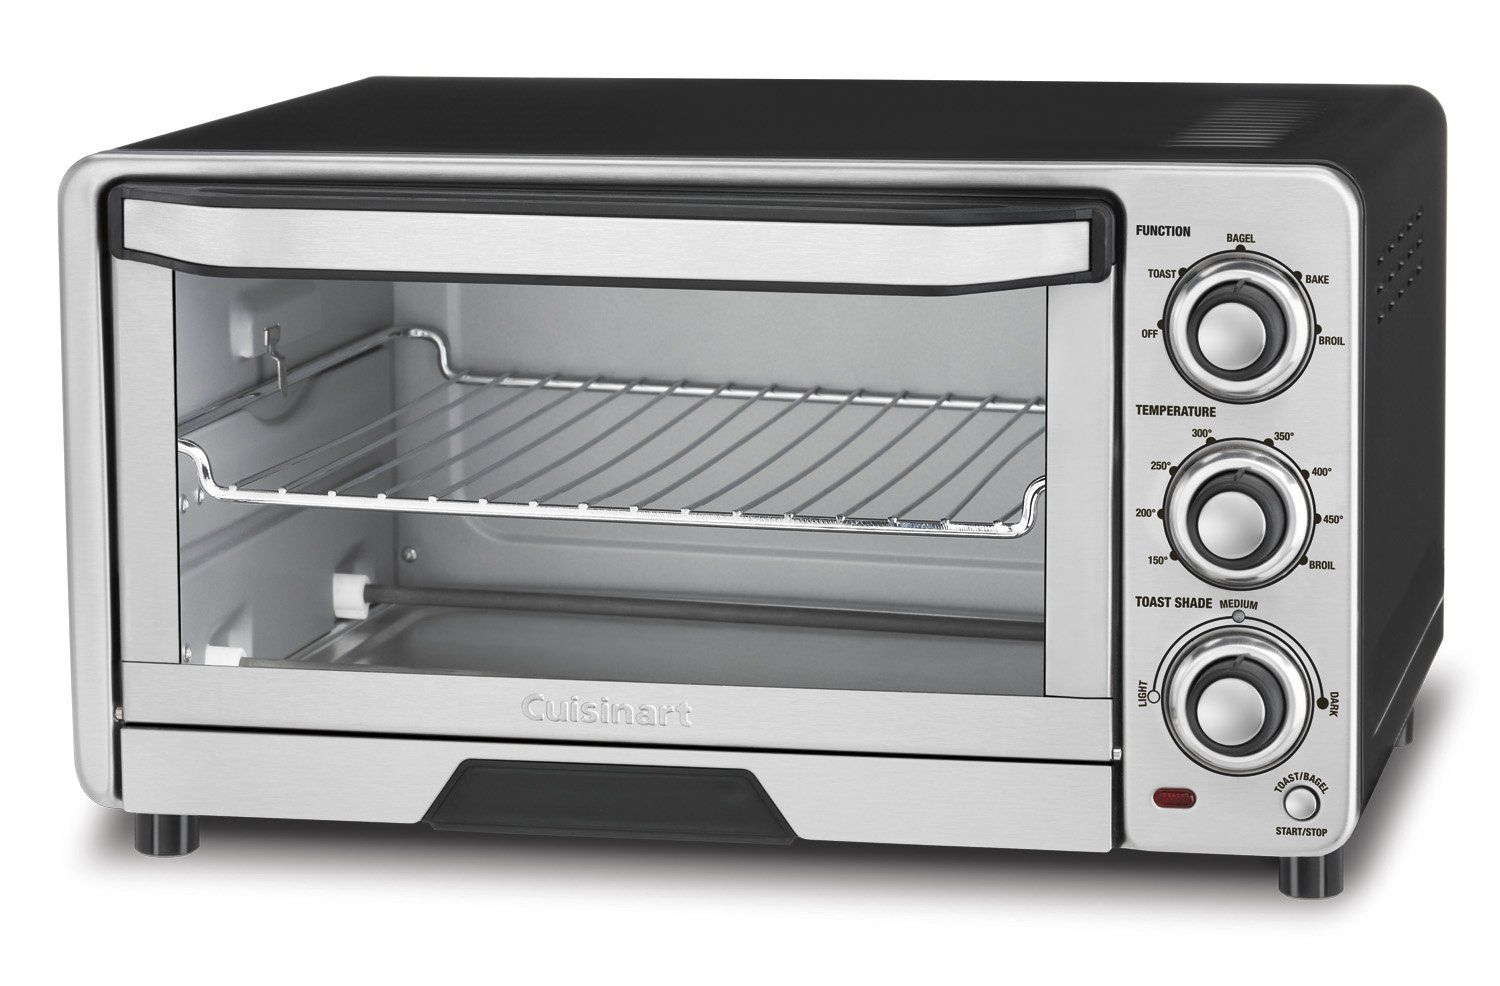 Oven Toaster: Cuisinart Classic Toaster Oven